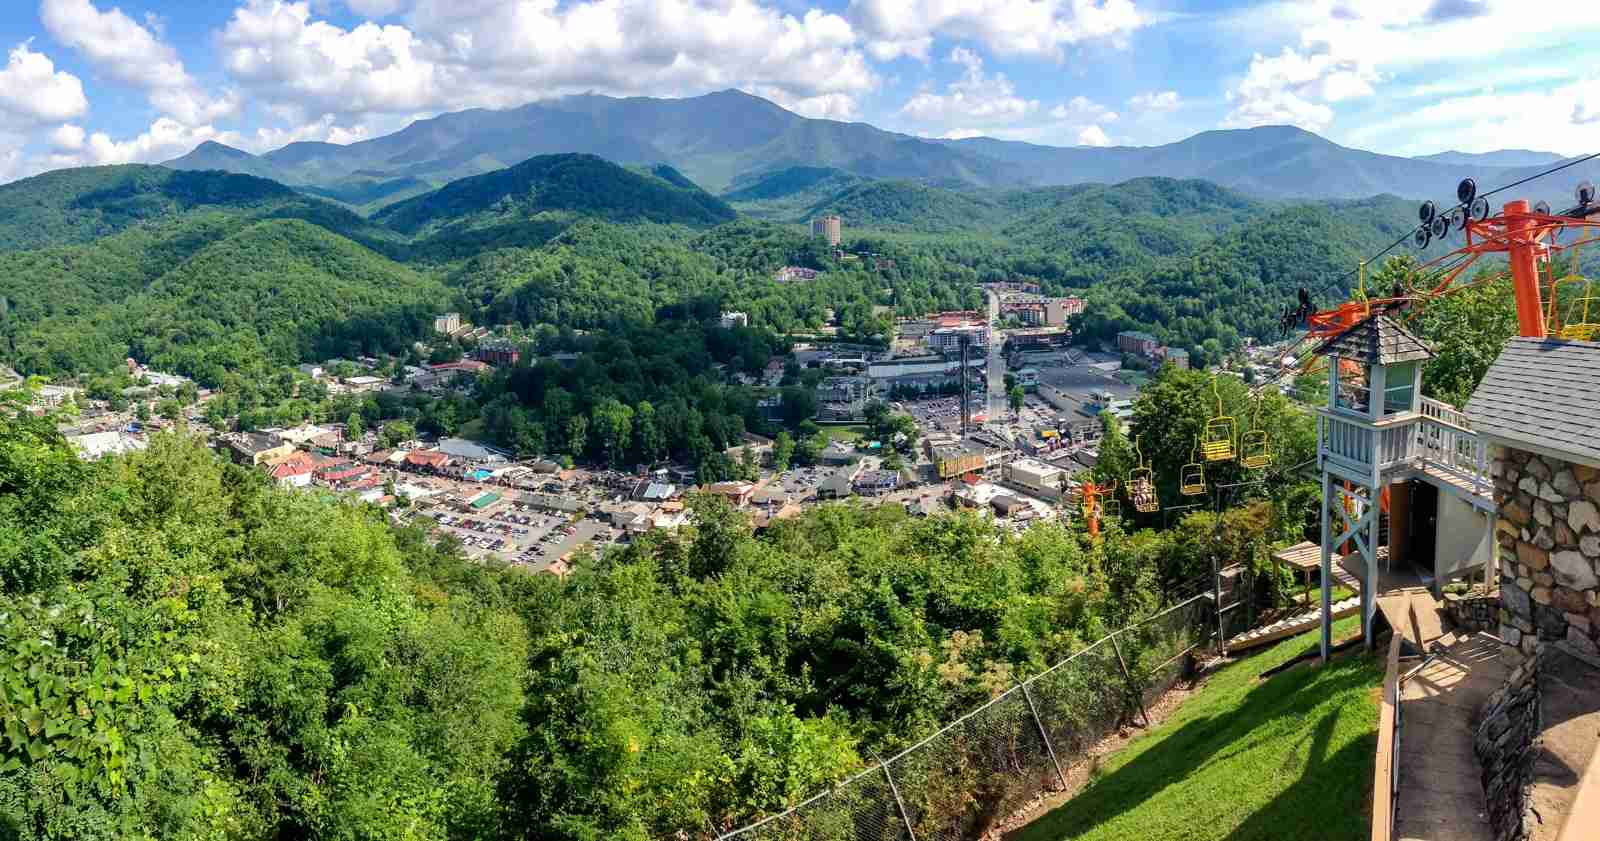 View of Gatlinburg, TN from the chairlift (Photo by Caitlin Riddell/The Points Guy)